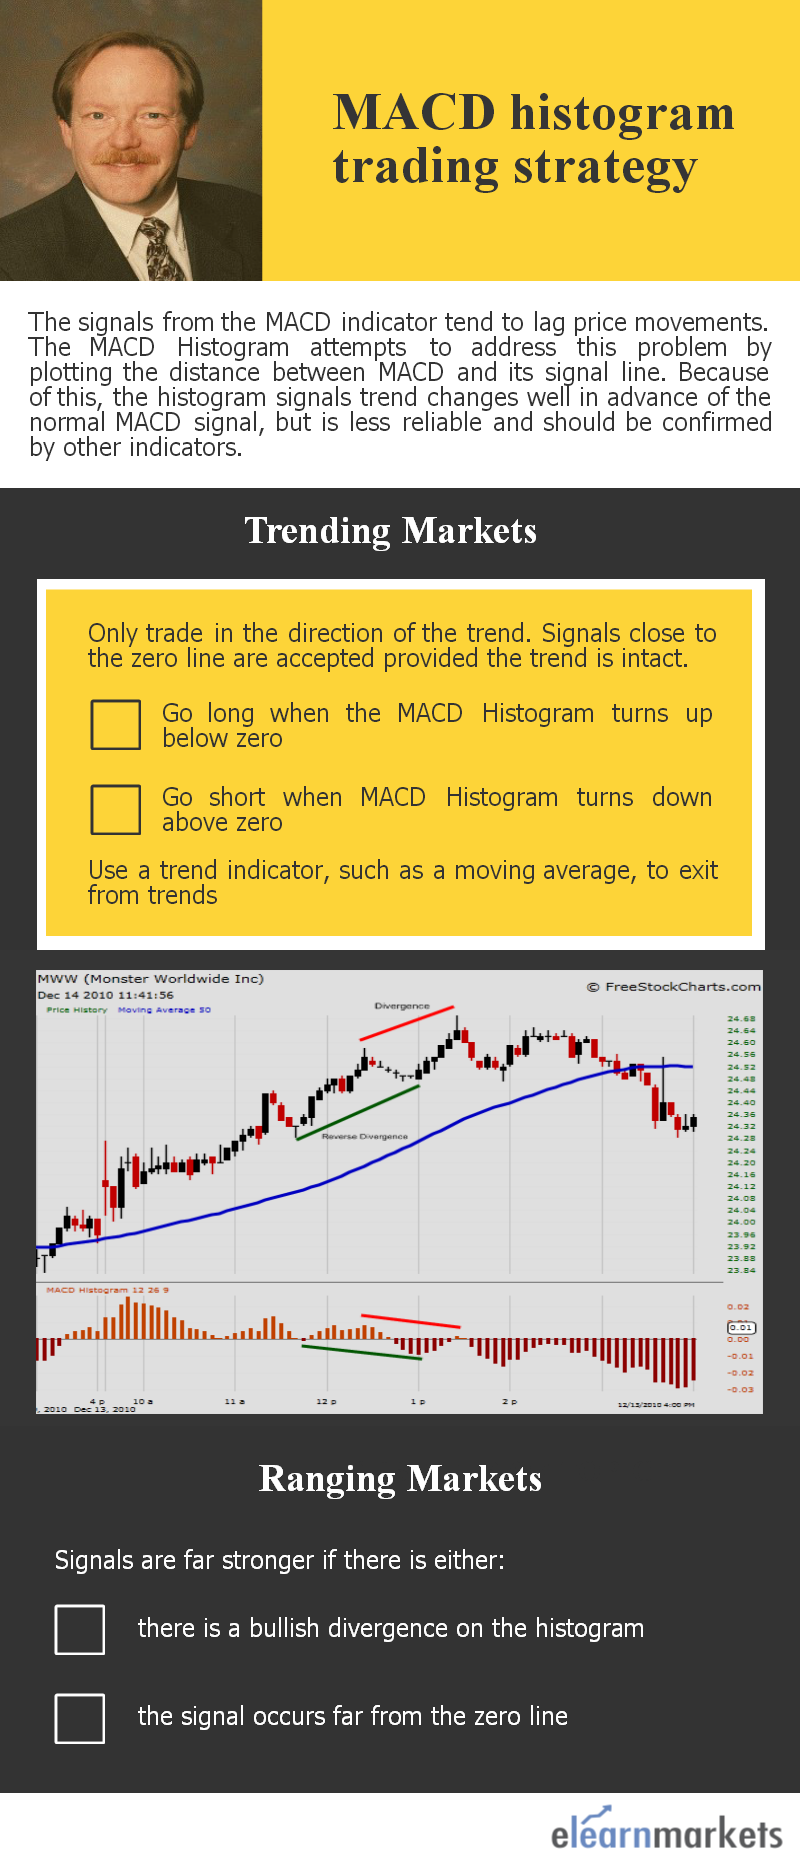 MACD histogram and the strategy for trading in trending